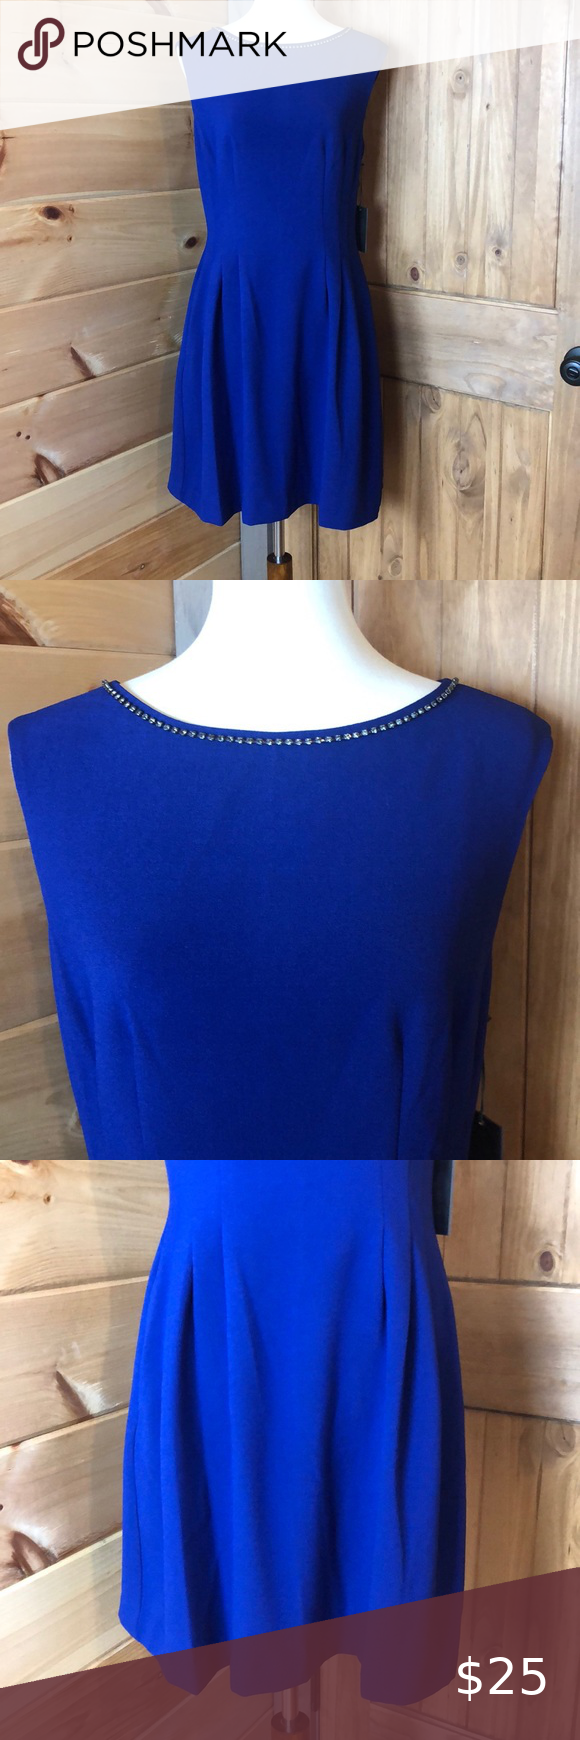 Nwt Vince Camuto Royal Blue Dress Vince Camuto Blue Flattering Dress With Rhinestones New With Tags Great For Royal Blue Dress Blue Dresses Flattering Dresses [ 1740 x 580 Pixel ]